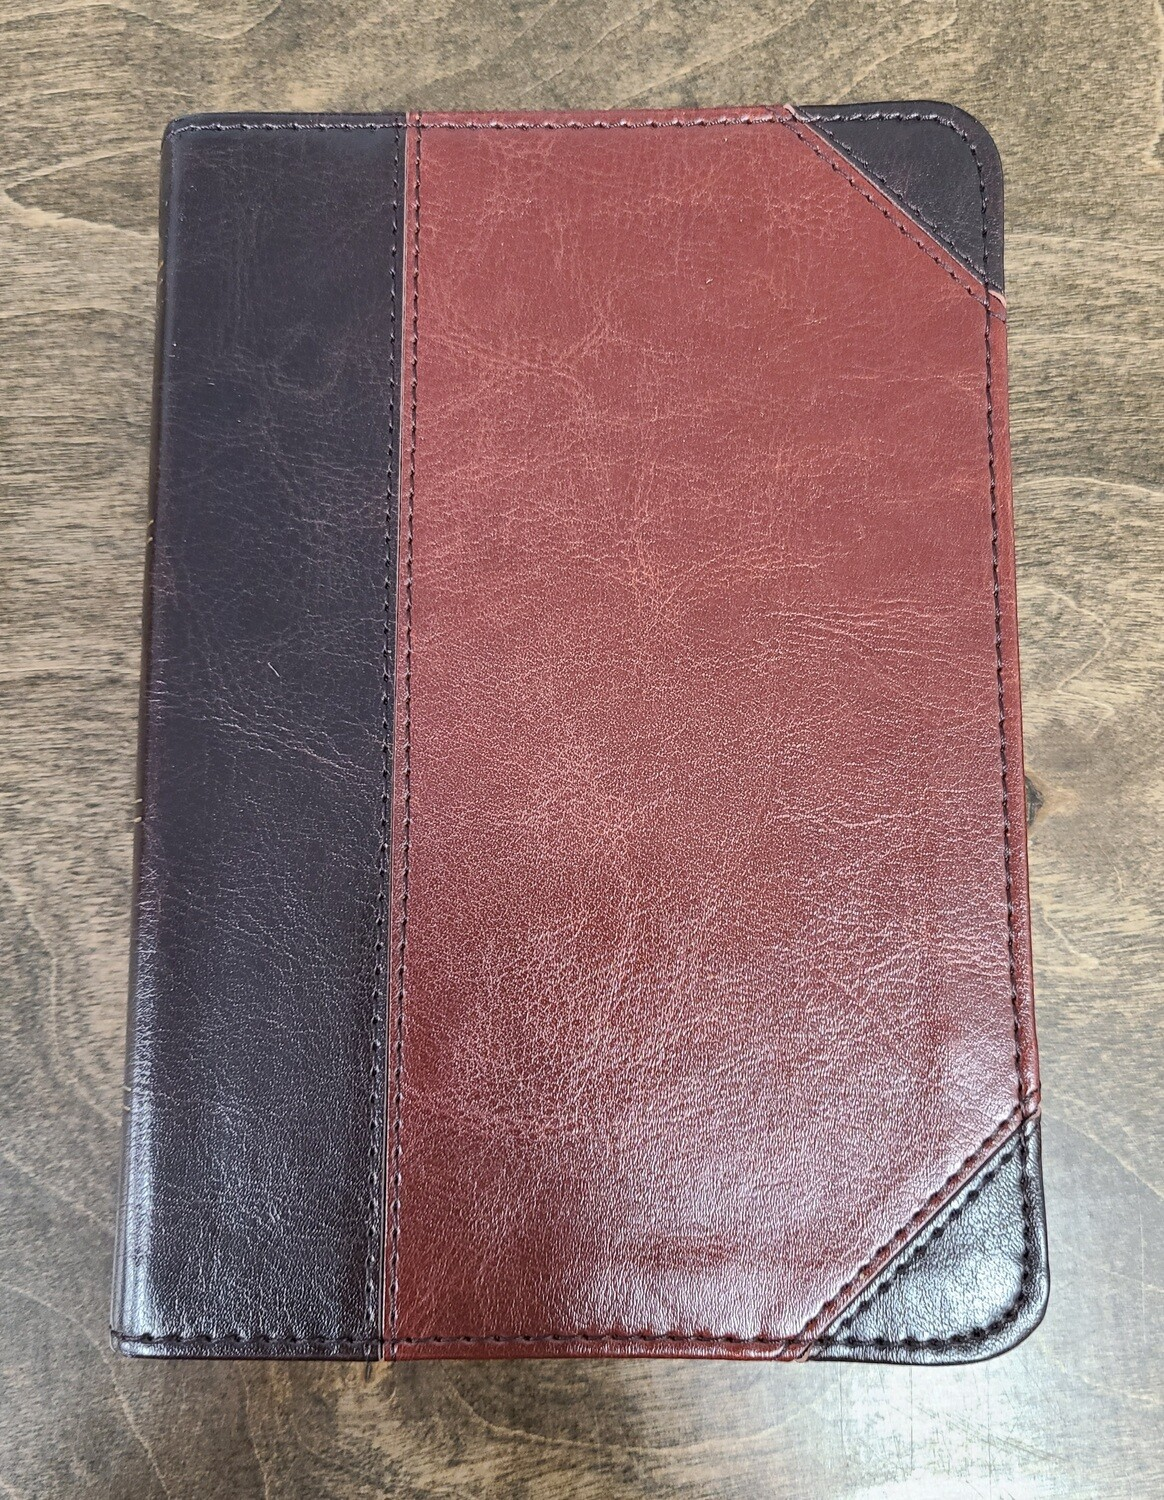 ESV Large Print Compact Brown/Cordovan Trutone Leather Bible